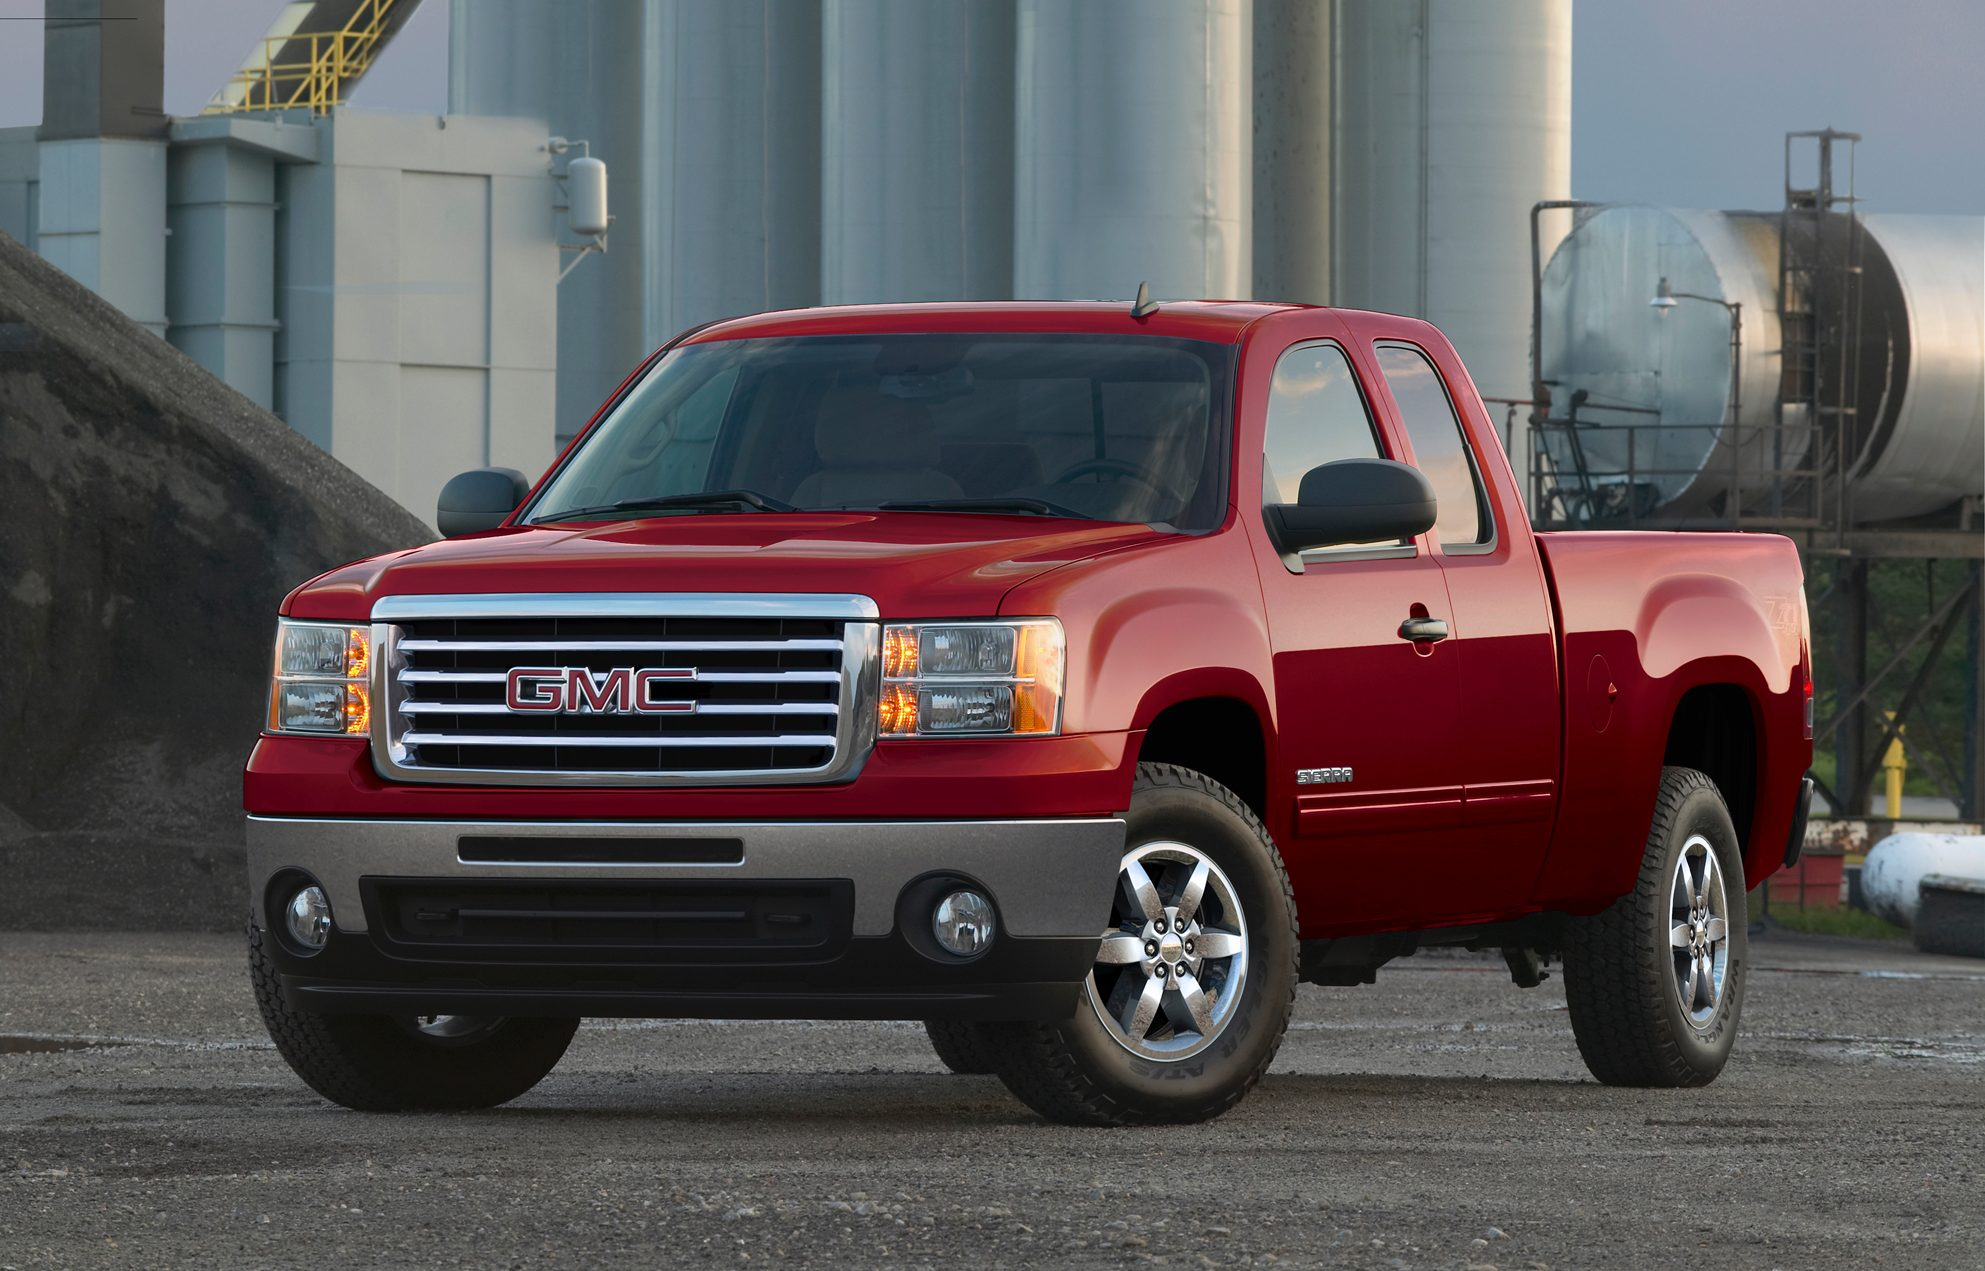 2013 Gmc Sierra 1500 Review Ratings Specs Prices And